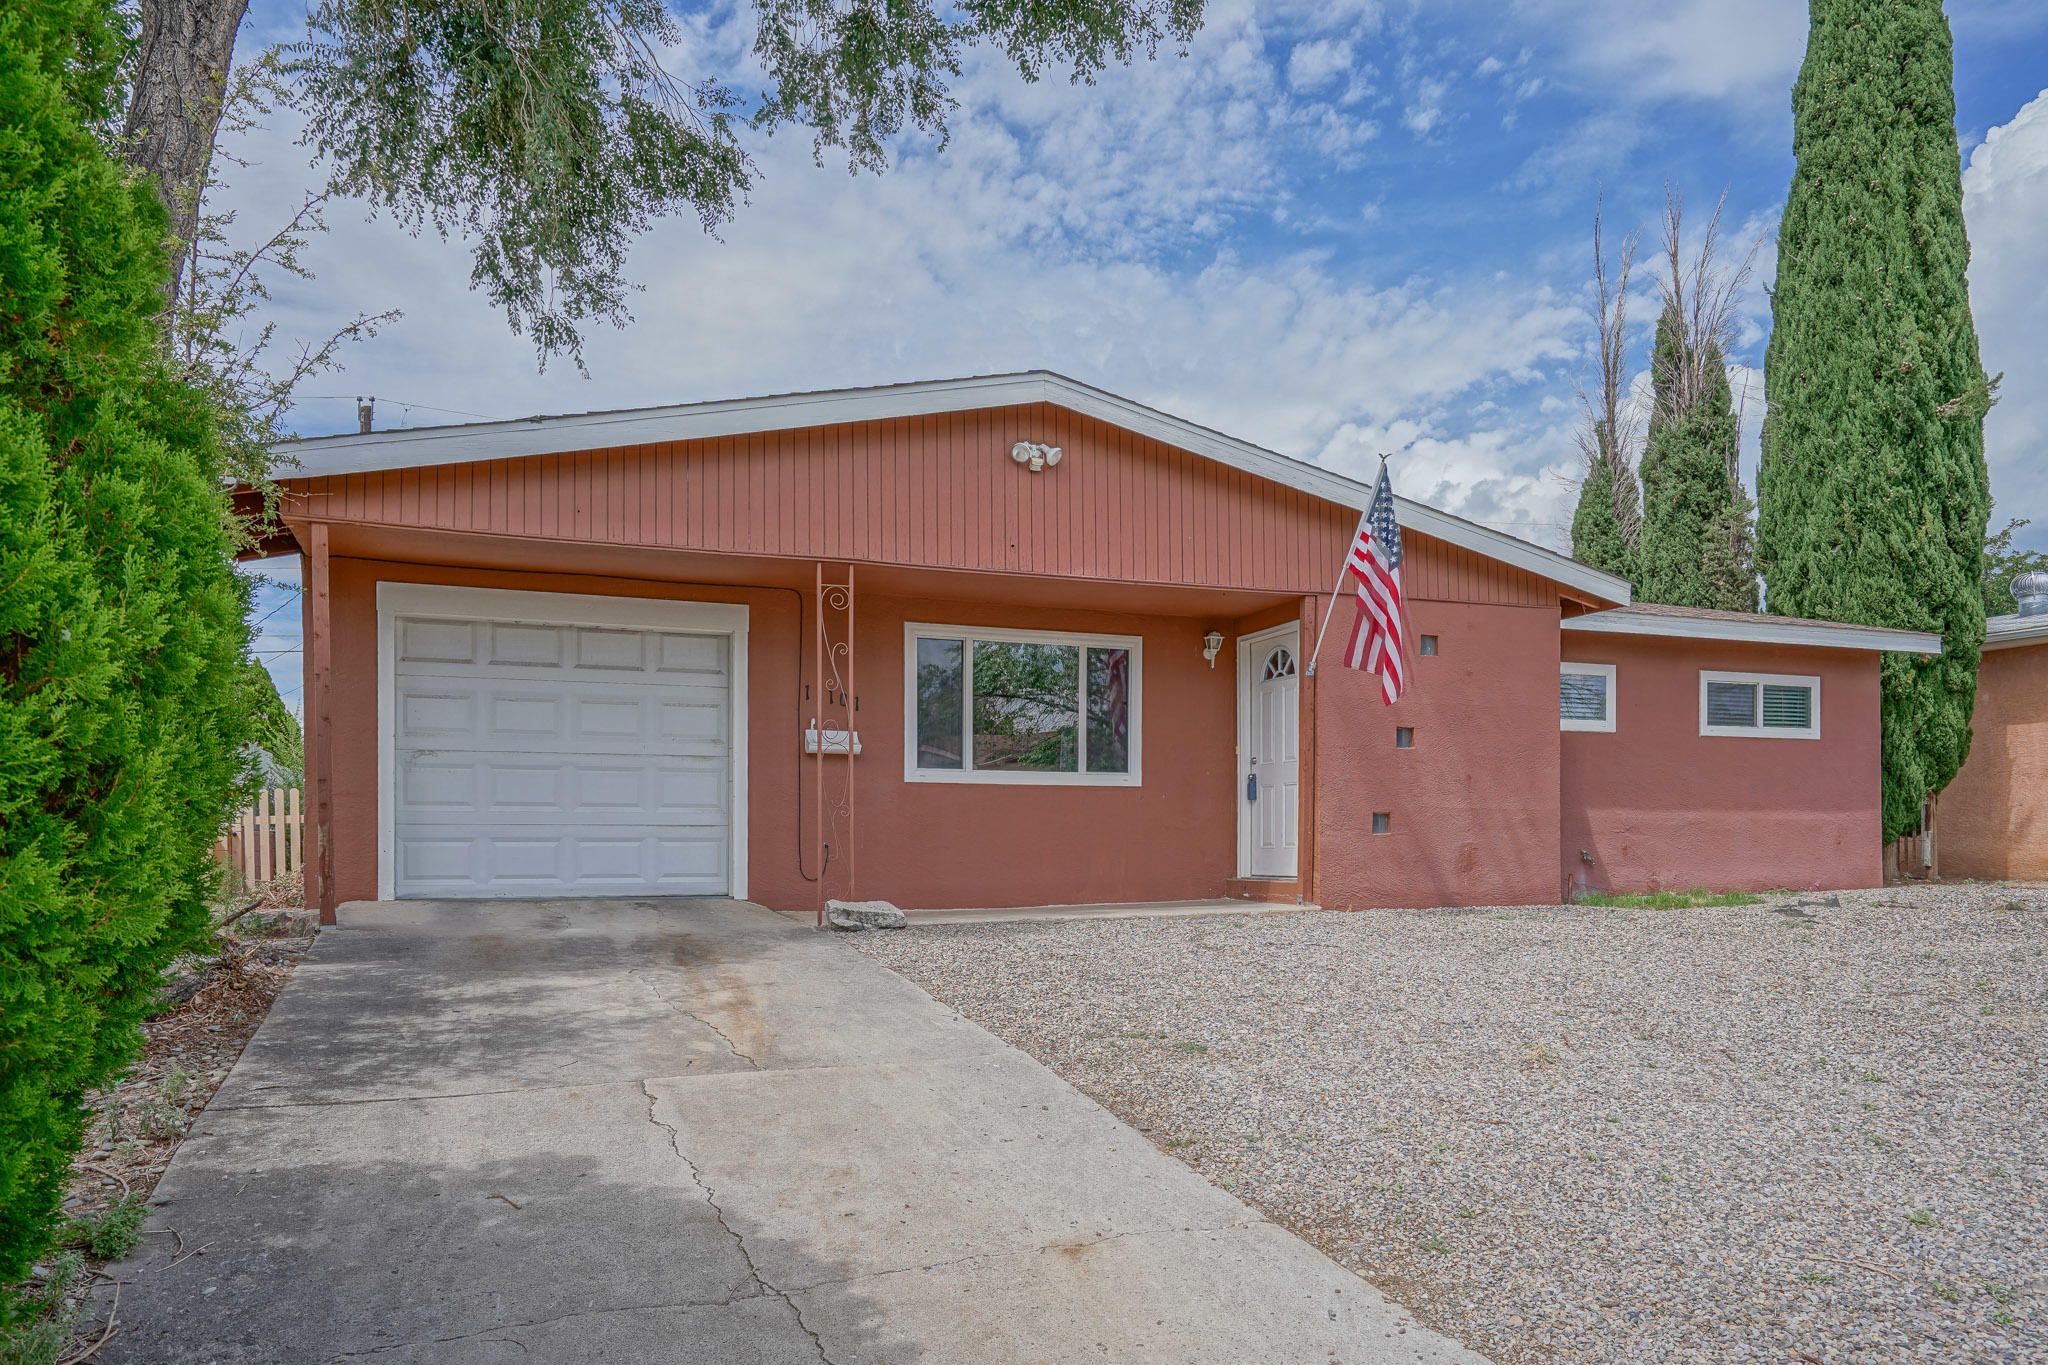 Location, location.  Come and see this beautiful and charming 3 bedroom, 2 bath home with open living room and connecting kitchen. Spacious backyard with covered patio.  Schools, restaurants, and many more amenities only minutes away.  Access to Interstate 40 nearby.  Call today and schedule your appointment.  This home will not last.